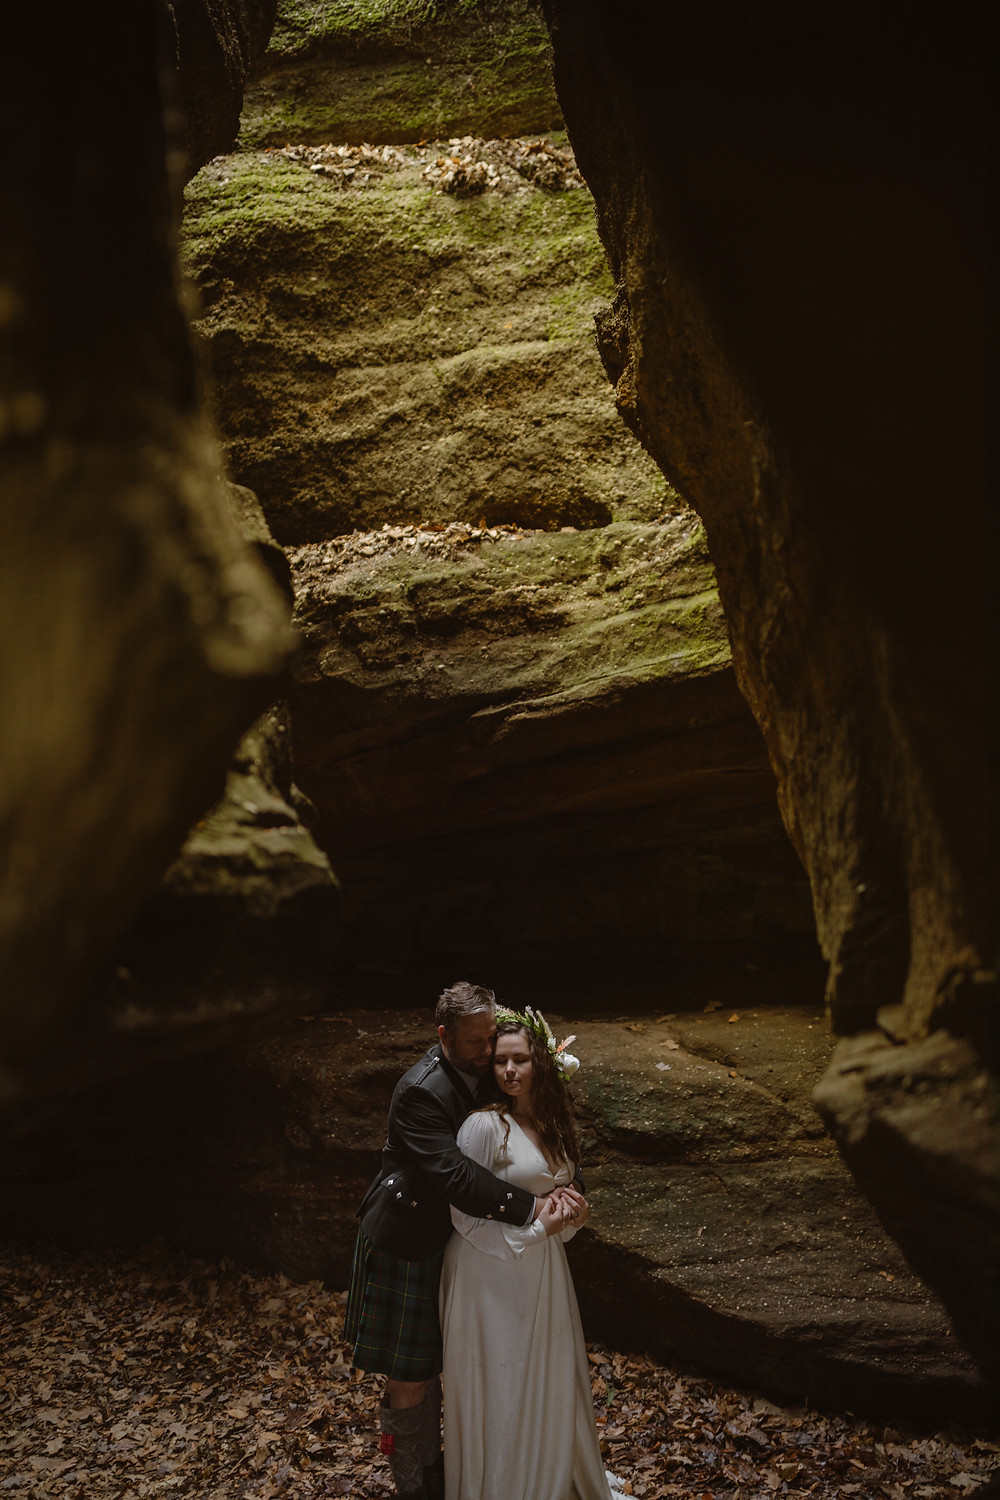 groom in Scottish kilt hugging wife from behind surrounded by moss covered ledges on their Nelson Kennedy Ledges Ohio elopement day